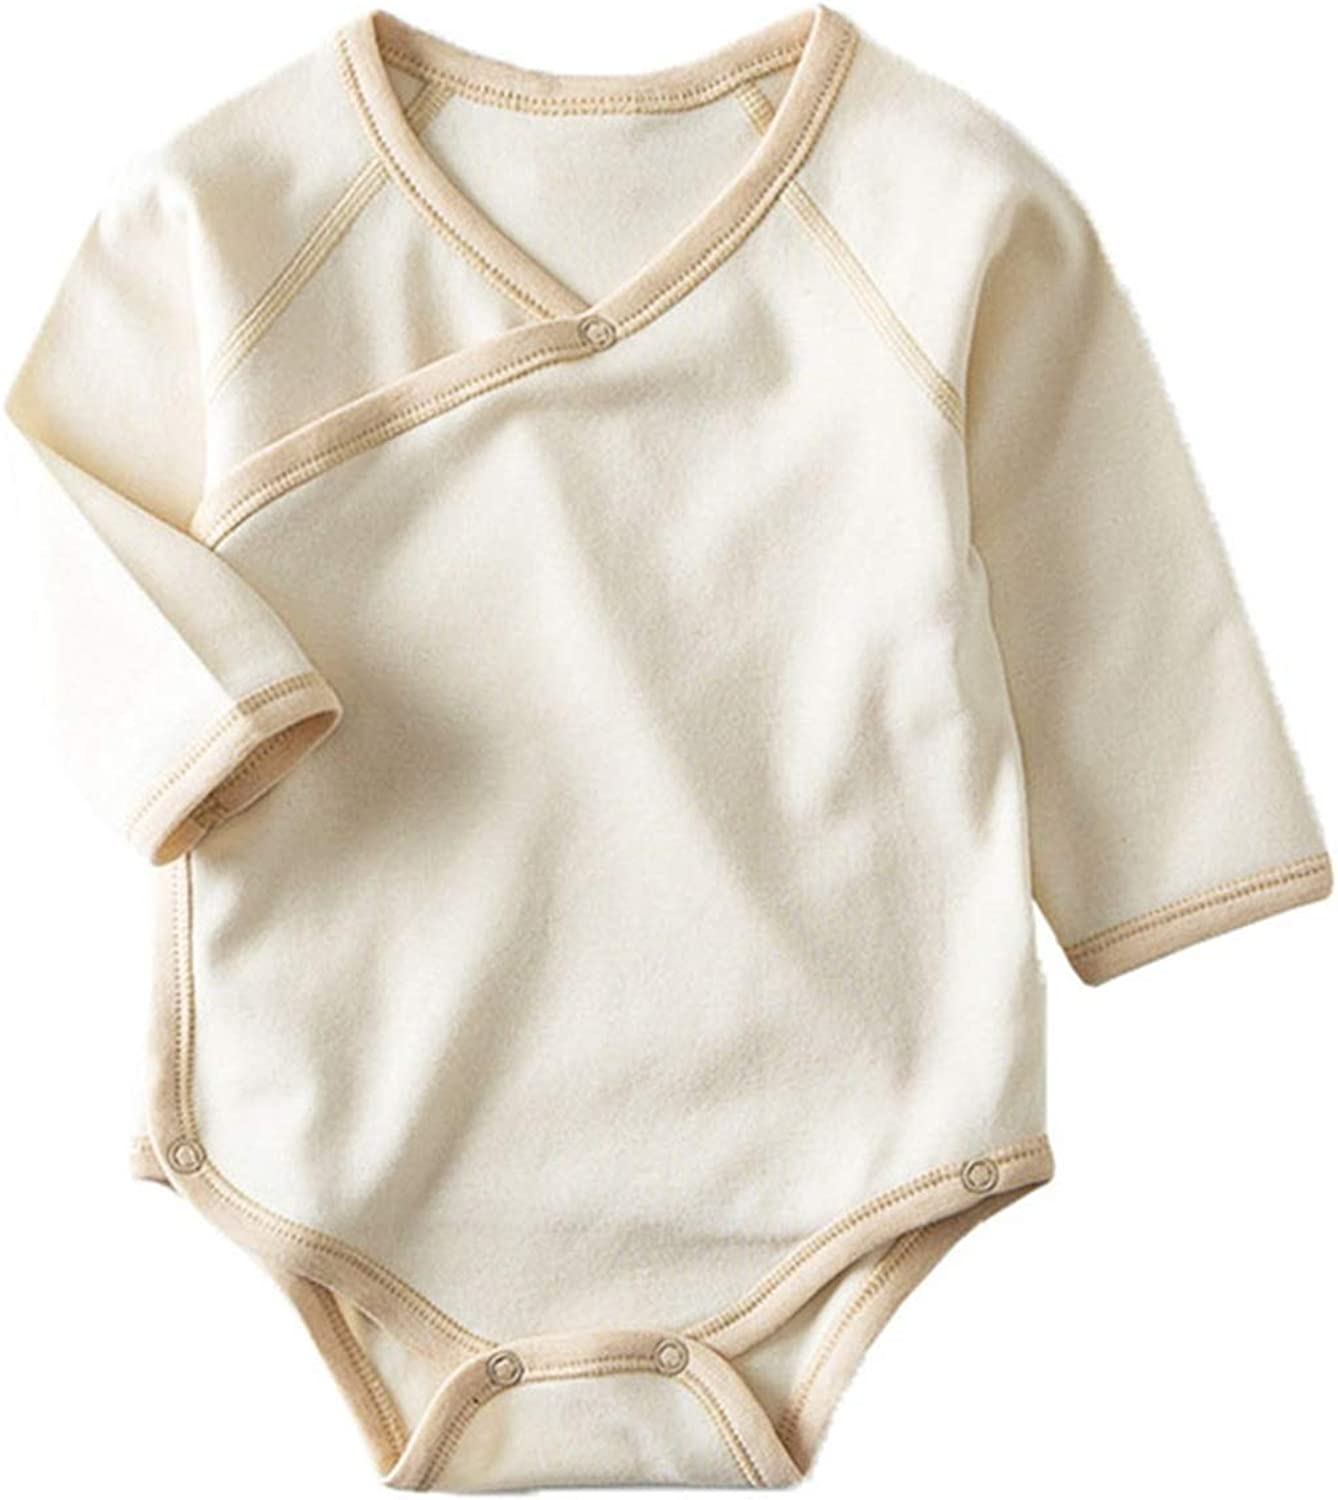 Feing Infant Baby Colored Cotton Long Sleeved Bag Hip Clothes Straps one Piece Jumpsuit